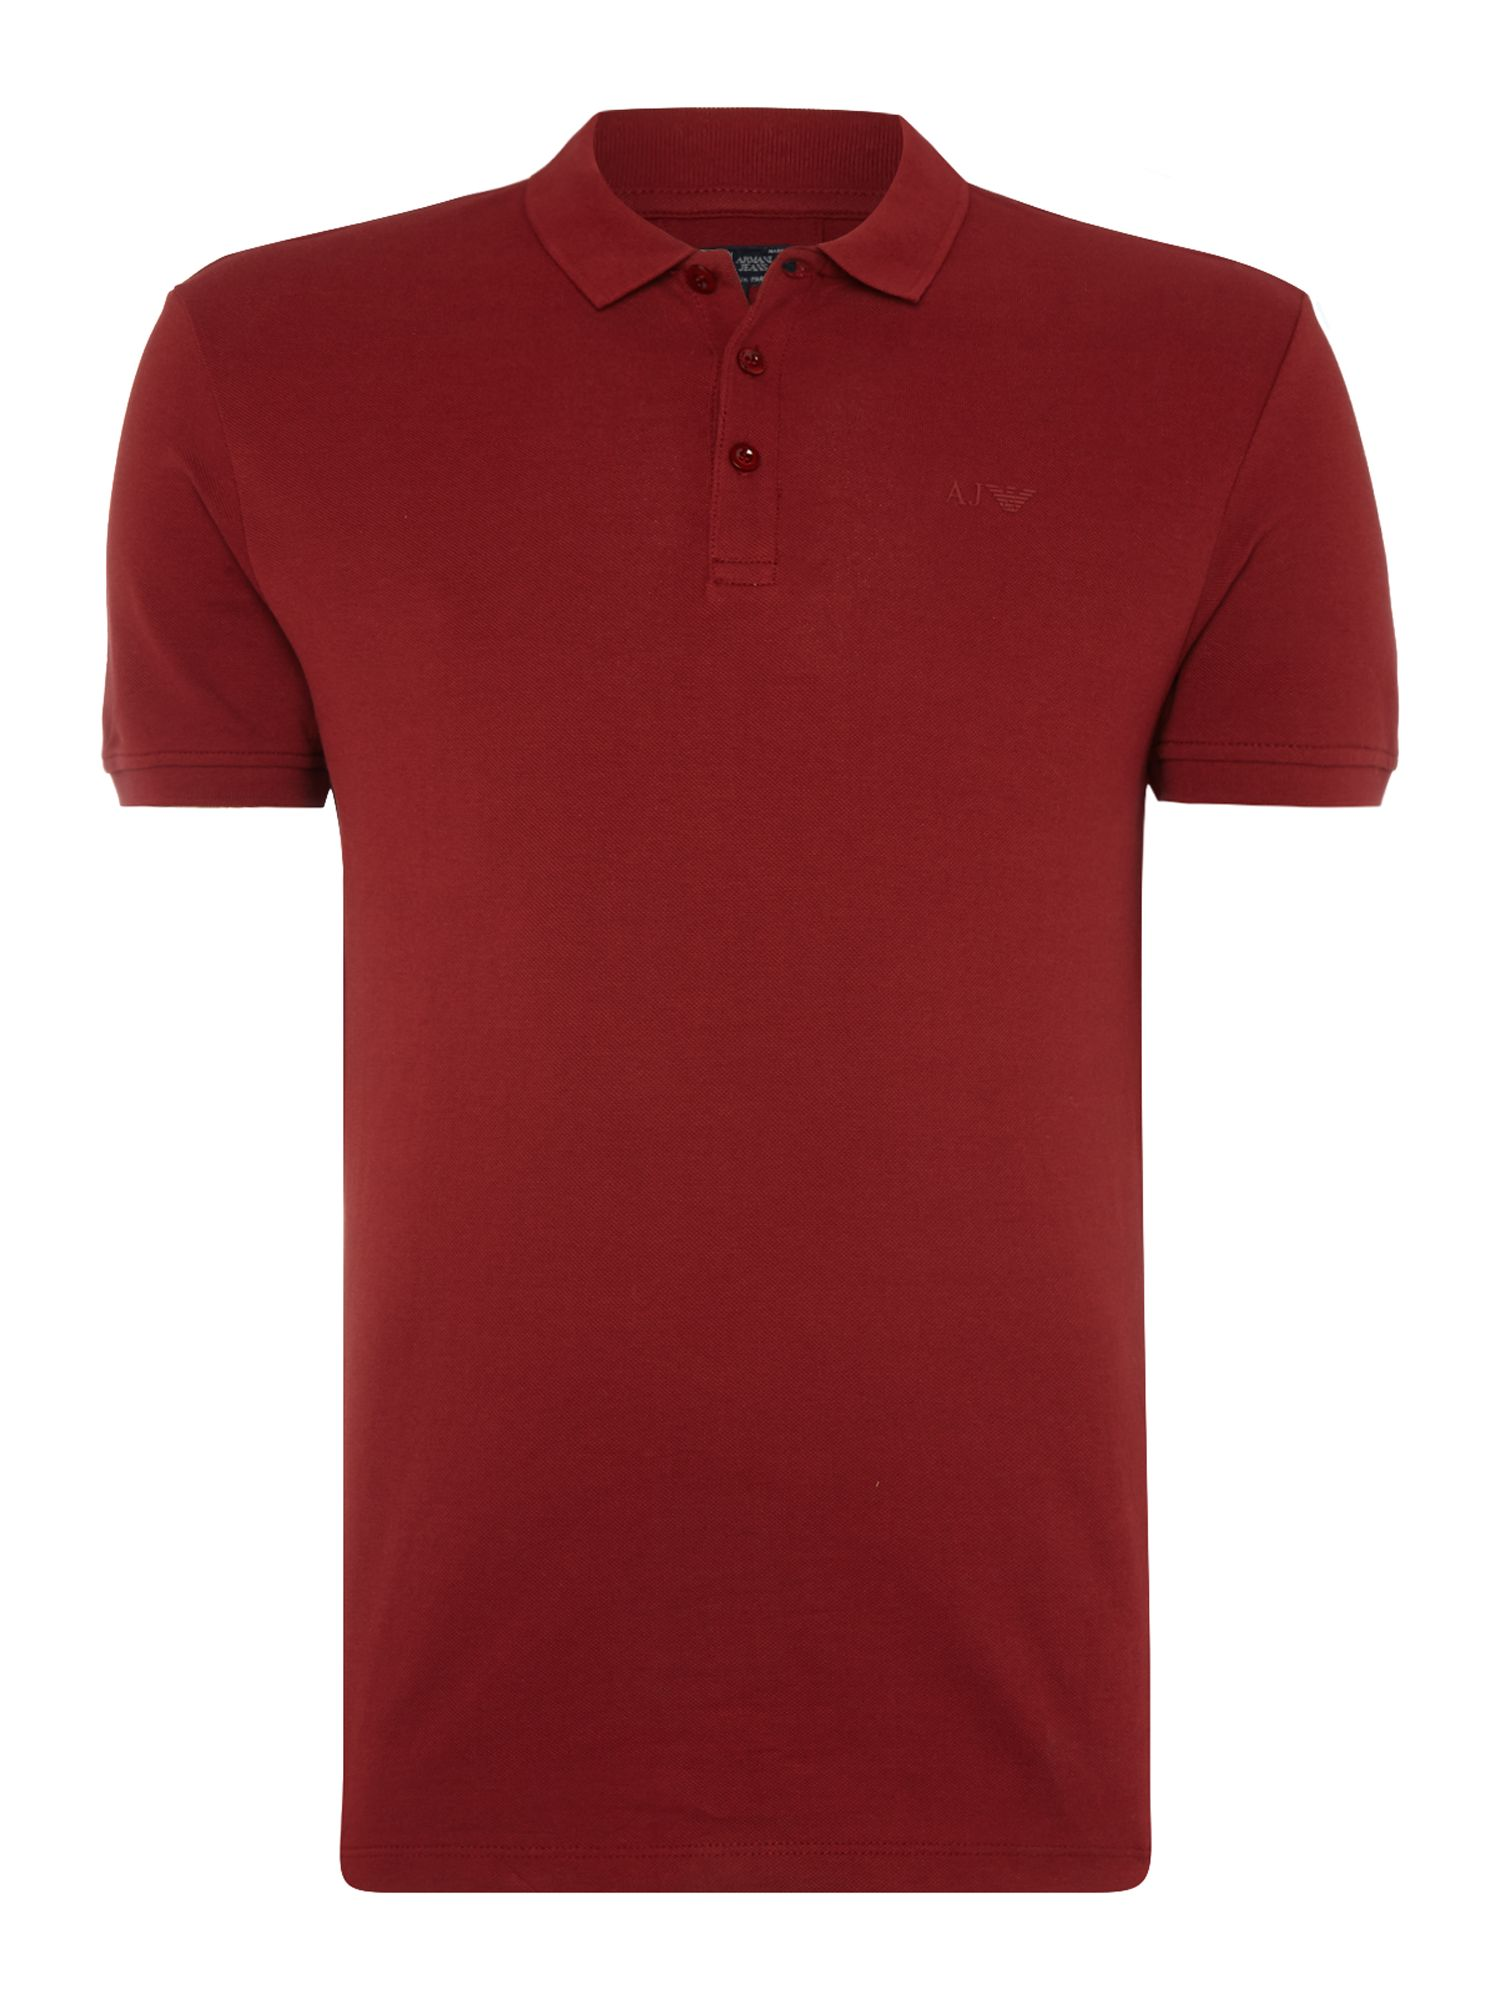 Men's Armani Jeans Regular fit short sleeve logo polo shirt, Red